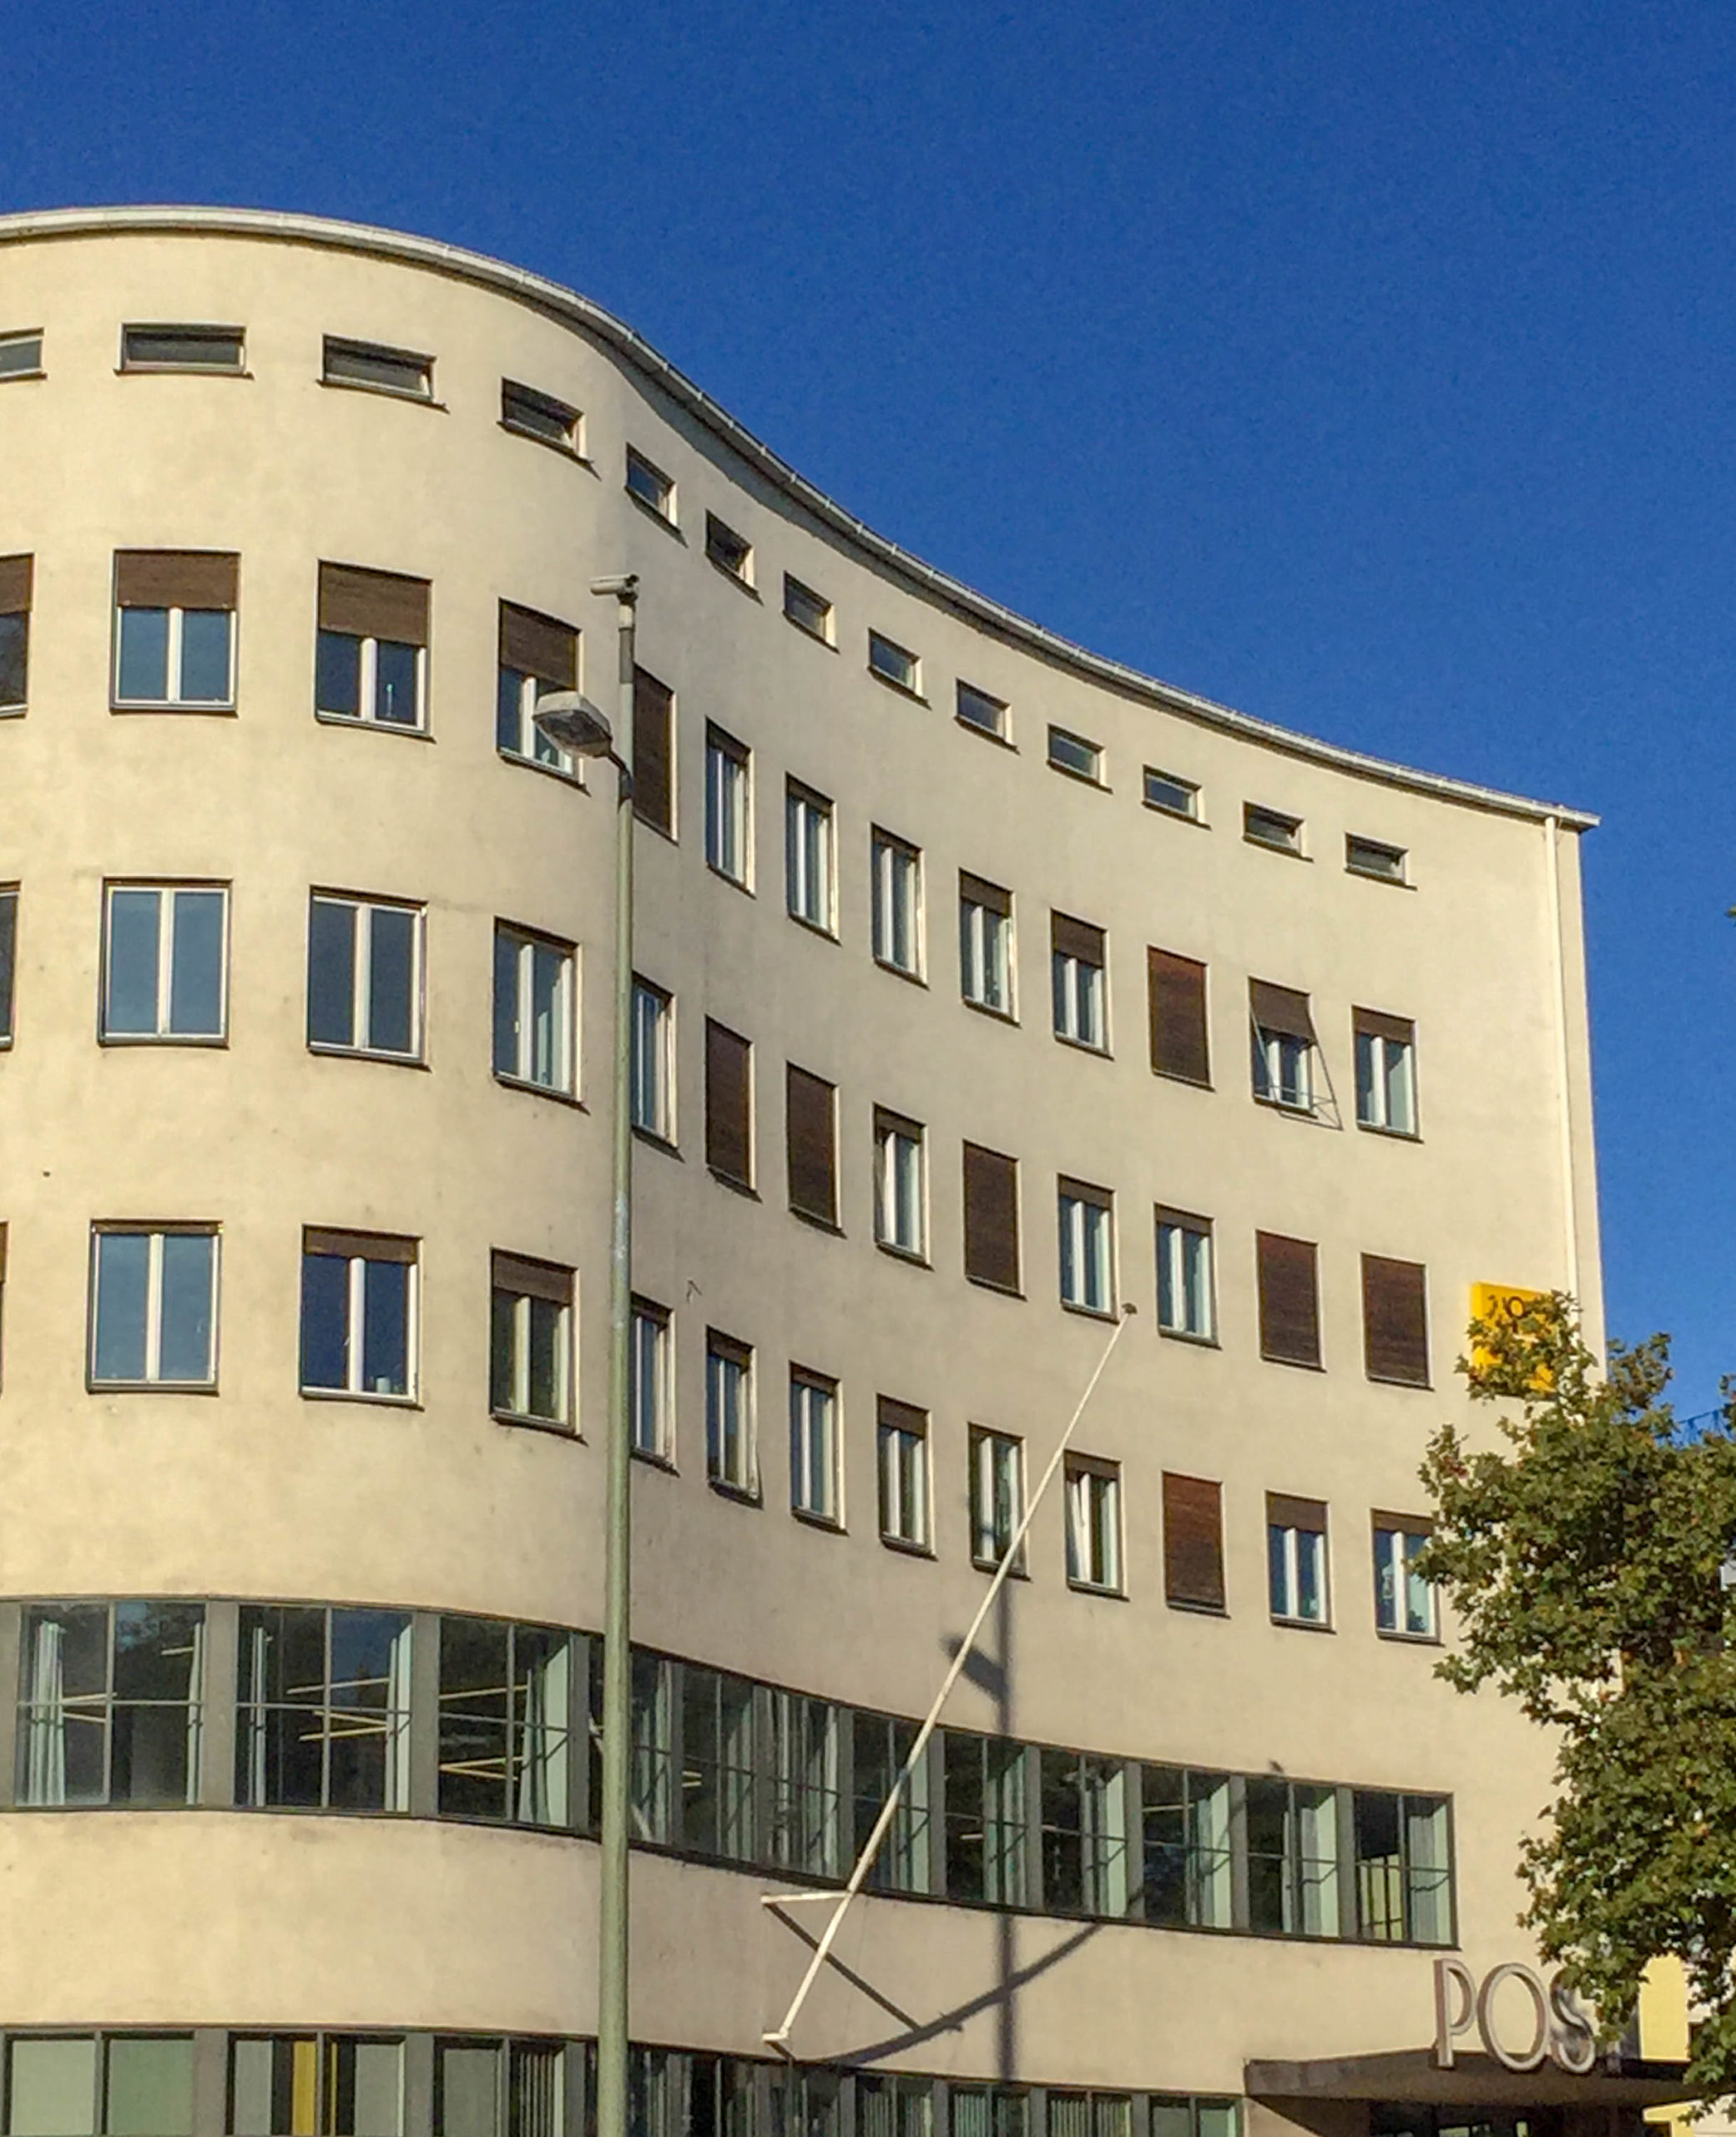 Post office building, 1931-1932. Architects: Franz Holzhammer, Walther Schmidt